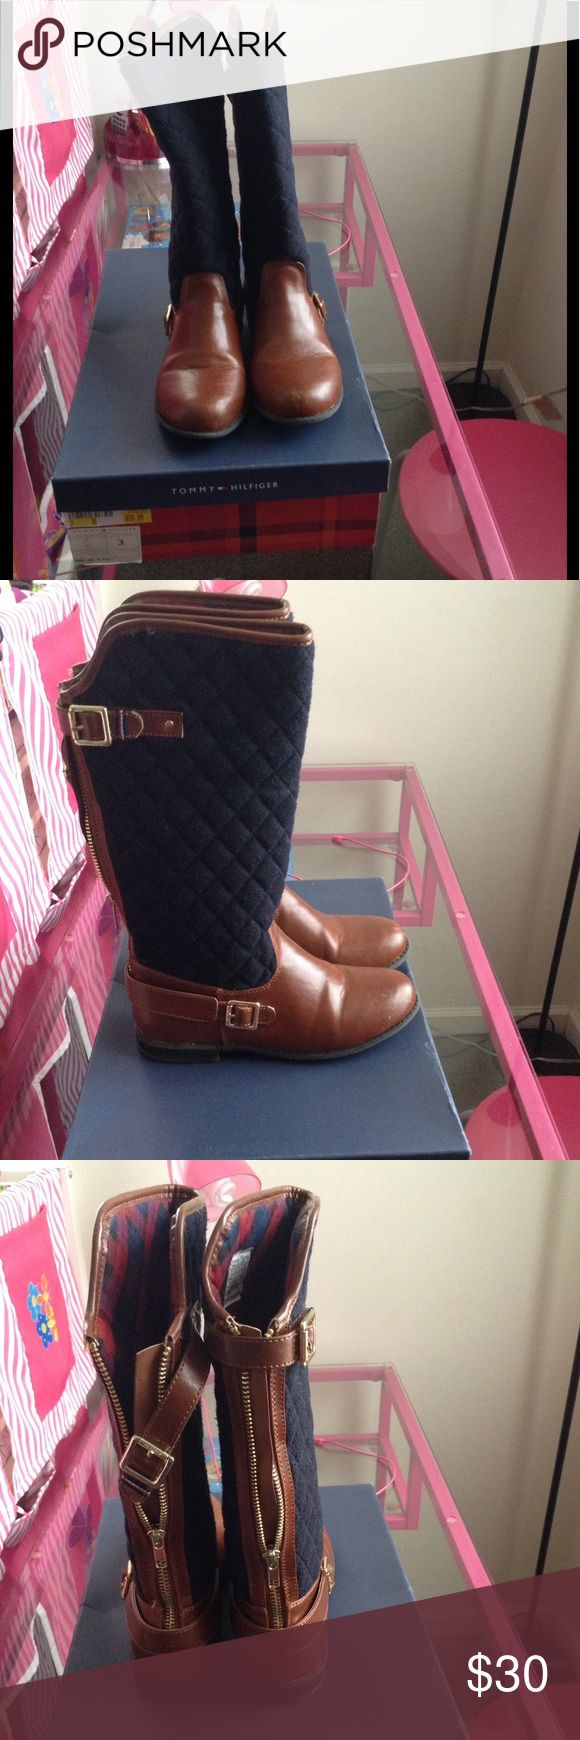 Tommy Hilfiger riding boots Sz 3 Good used condition. Leather & navy blue quilted. Small scuff on tip of left boot (see last pic) unnoticeable once wearing Tommy Hilfiger Shoes Boots